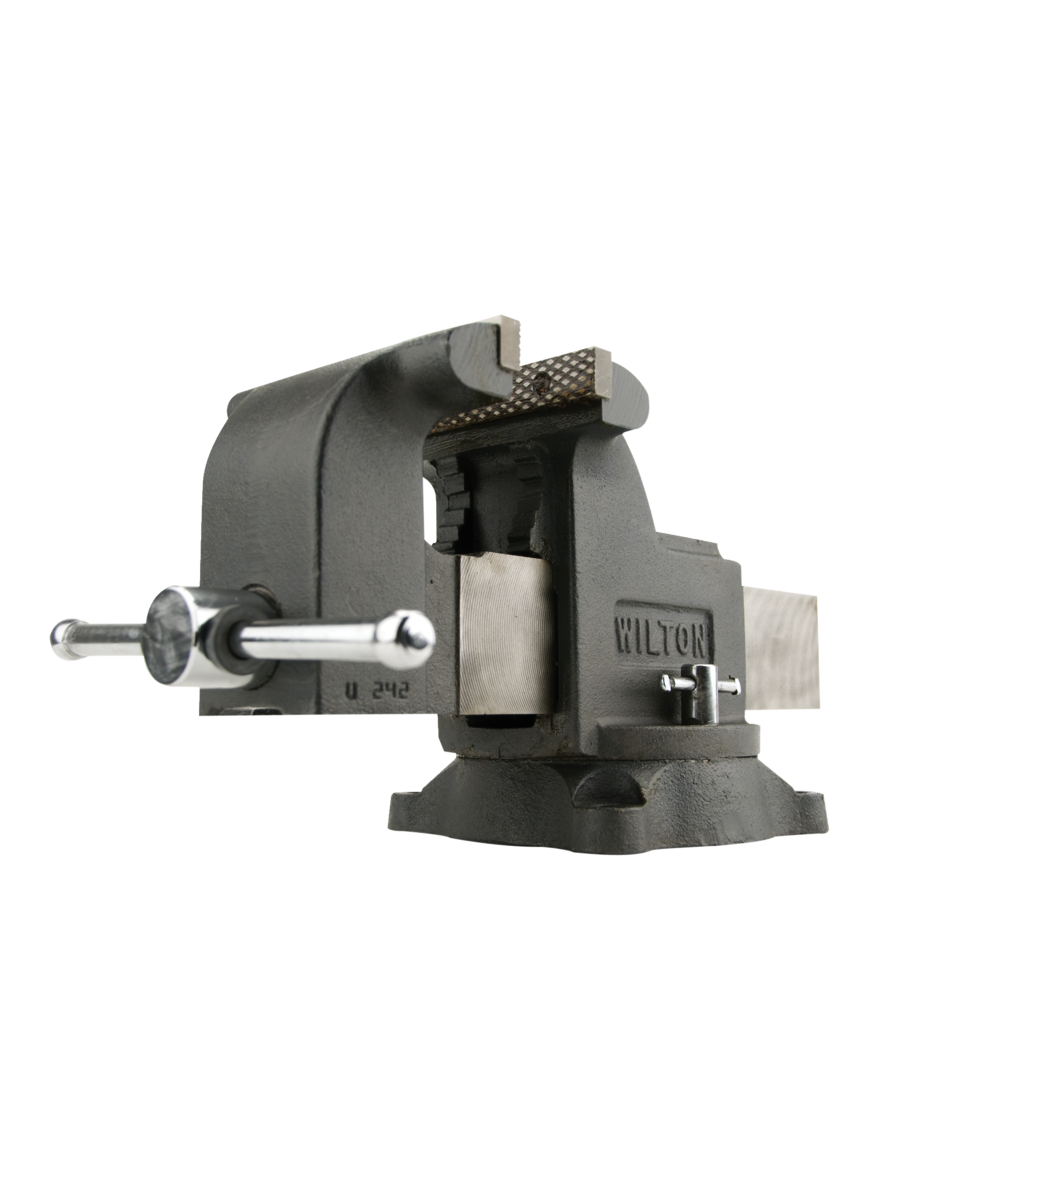 "Manual: WS6, Shop Vise, 6"" Jaw Width, 6"" Jaw Opening, 3-1/2"" Throat Depth"